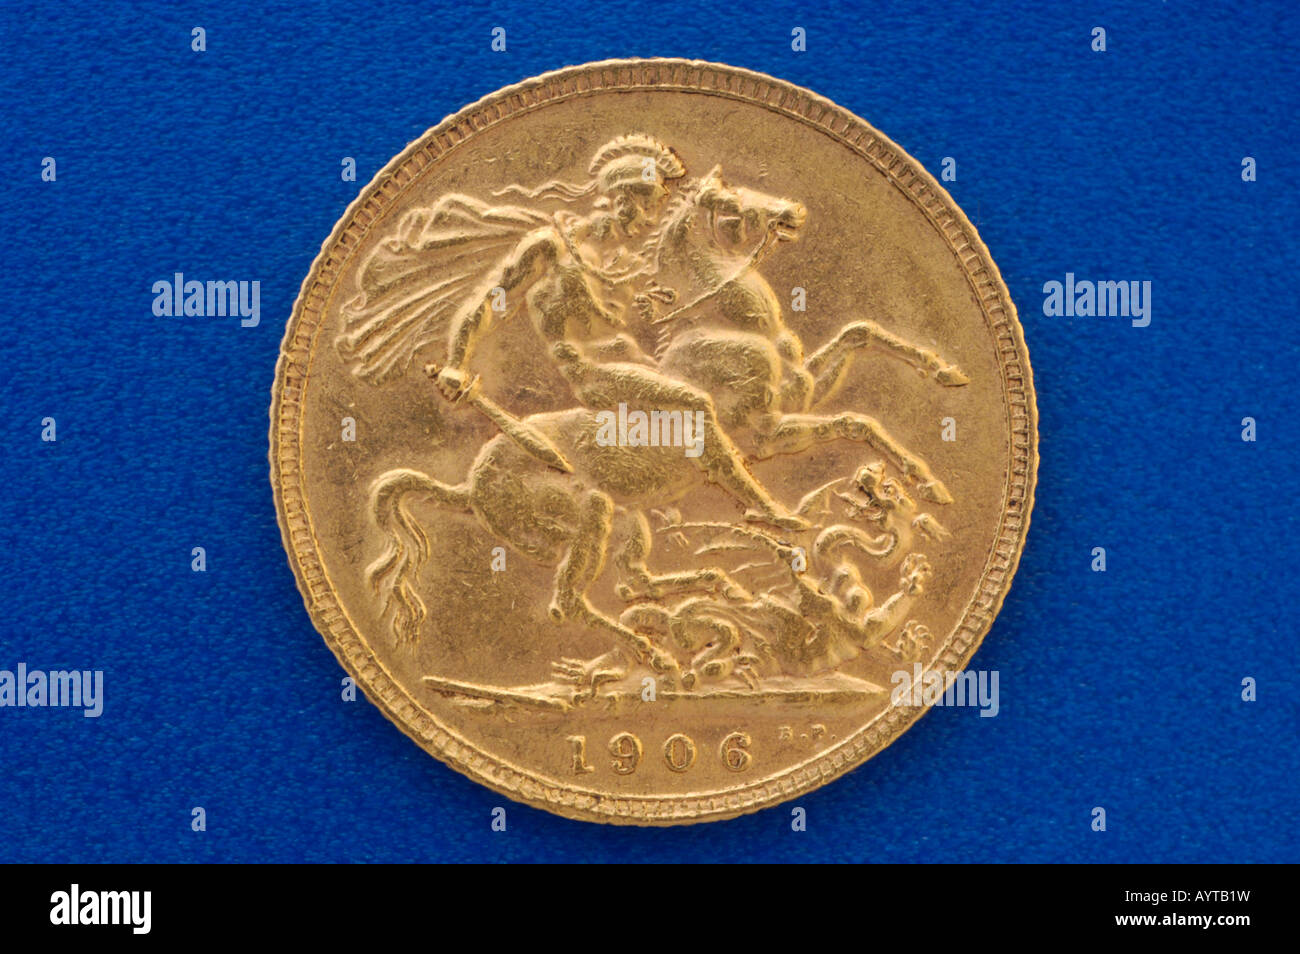 King Edward VII British empire gold coin from 1906 tail side